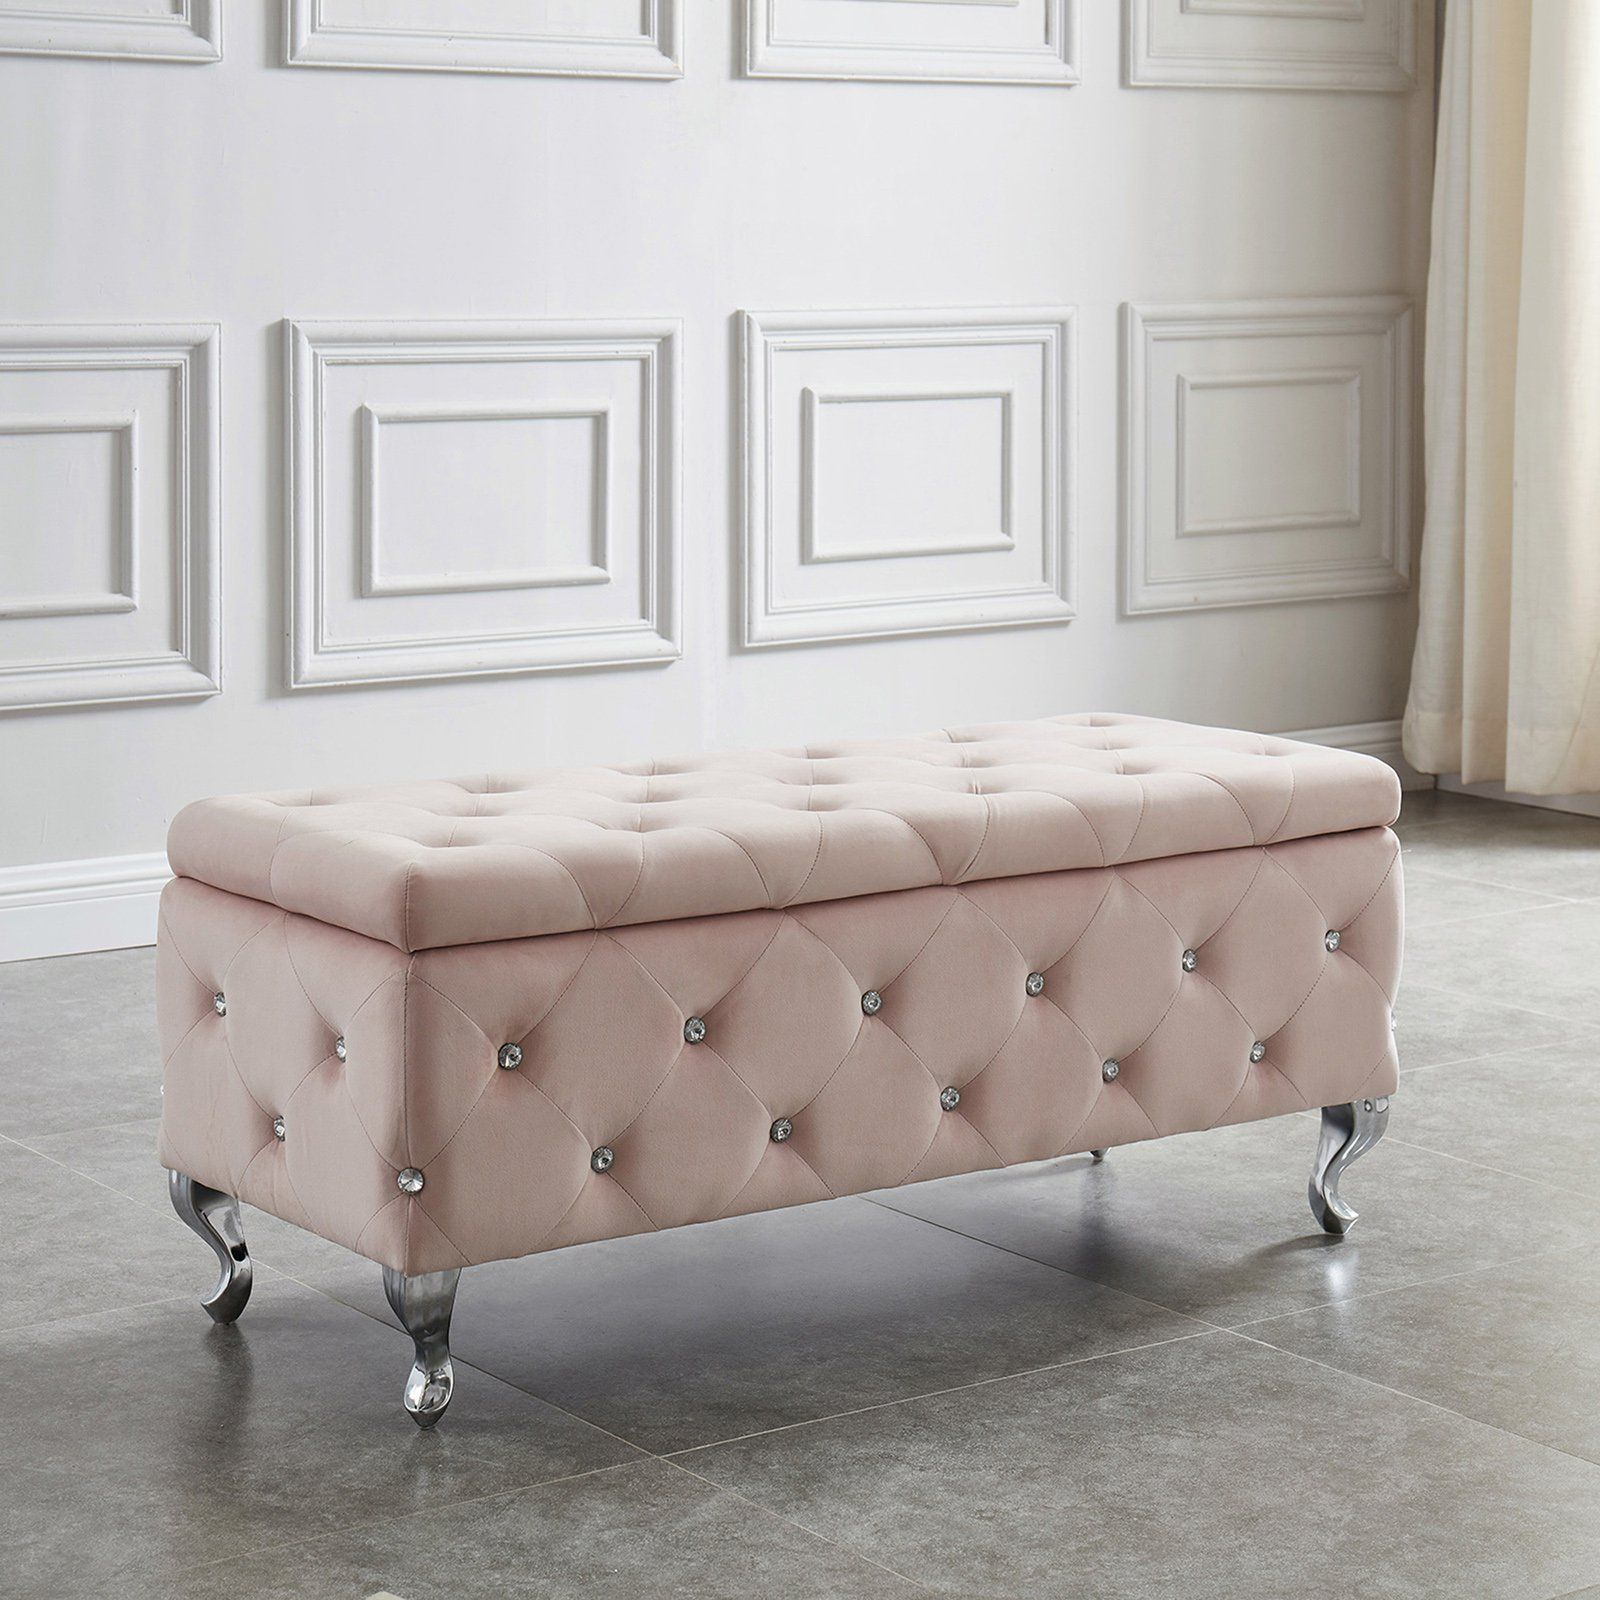 Nspire Velvet Storage Bench With Crystals In 2020